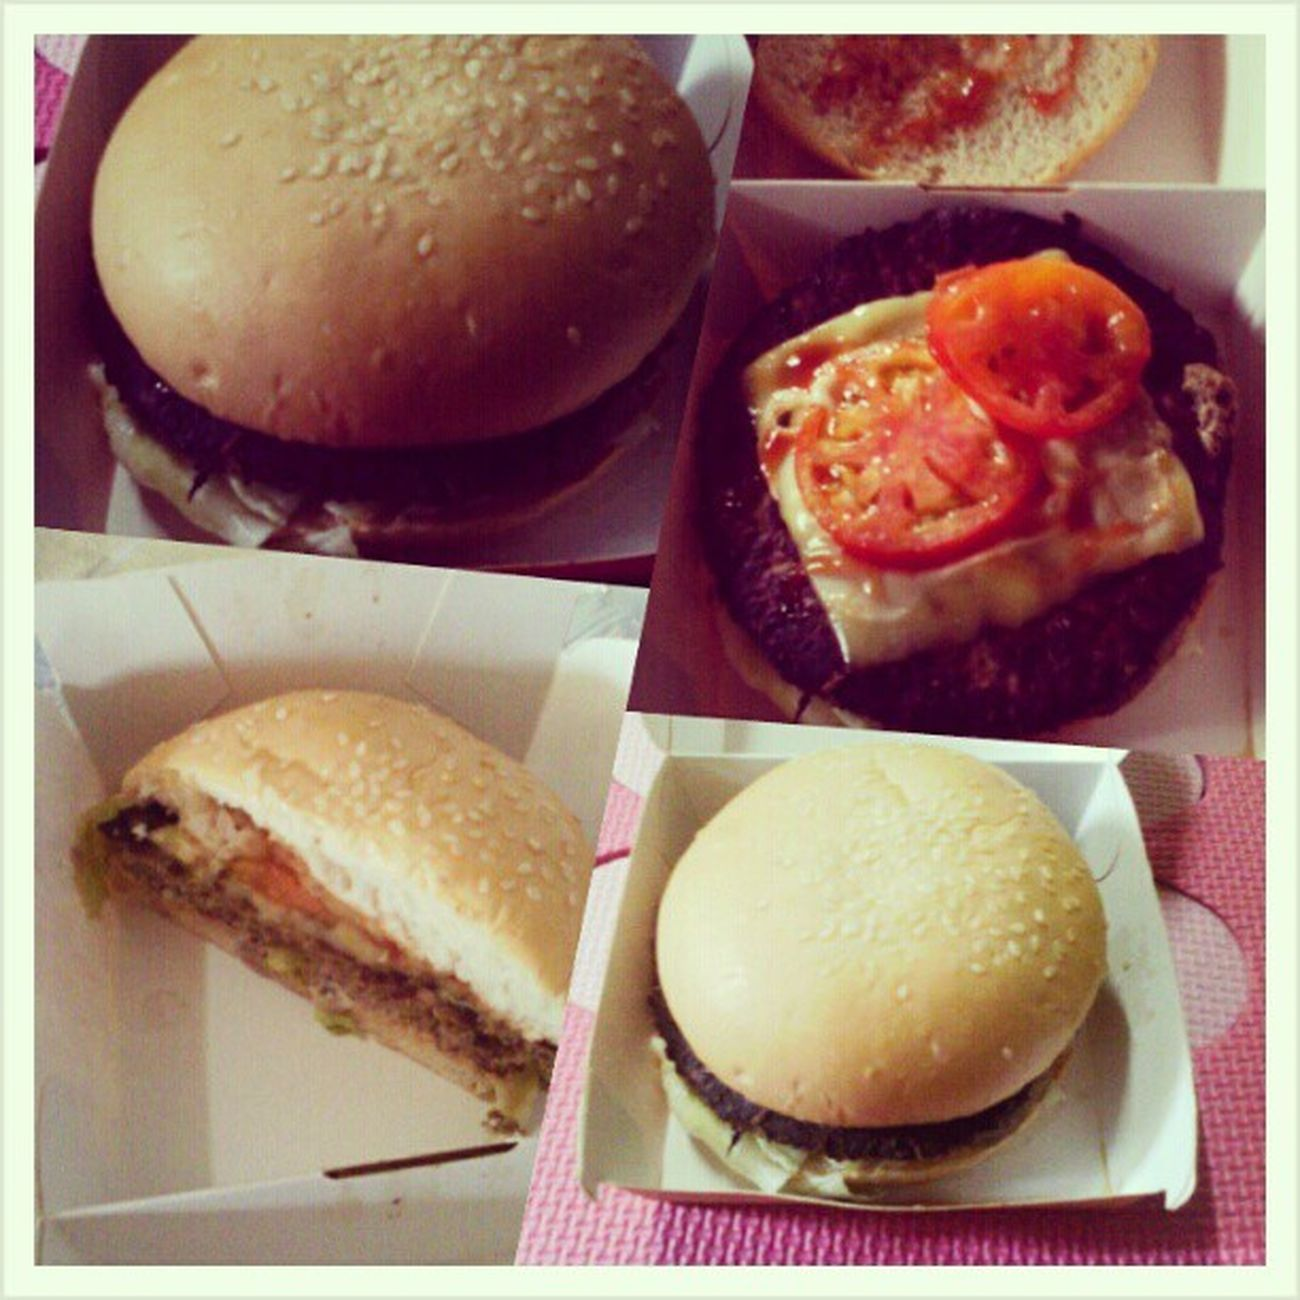 BIG Burger champ for Merienda ..